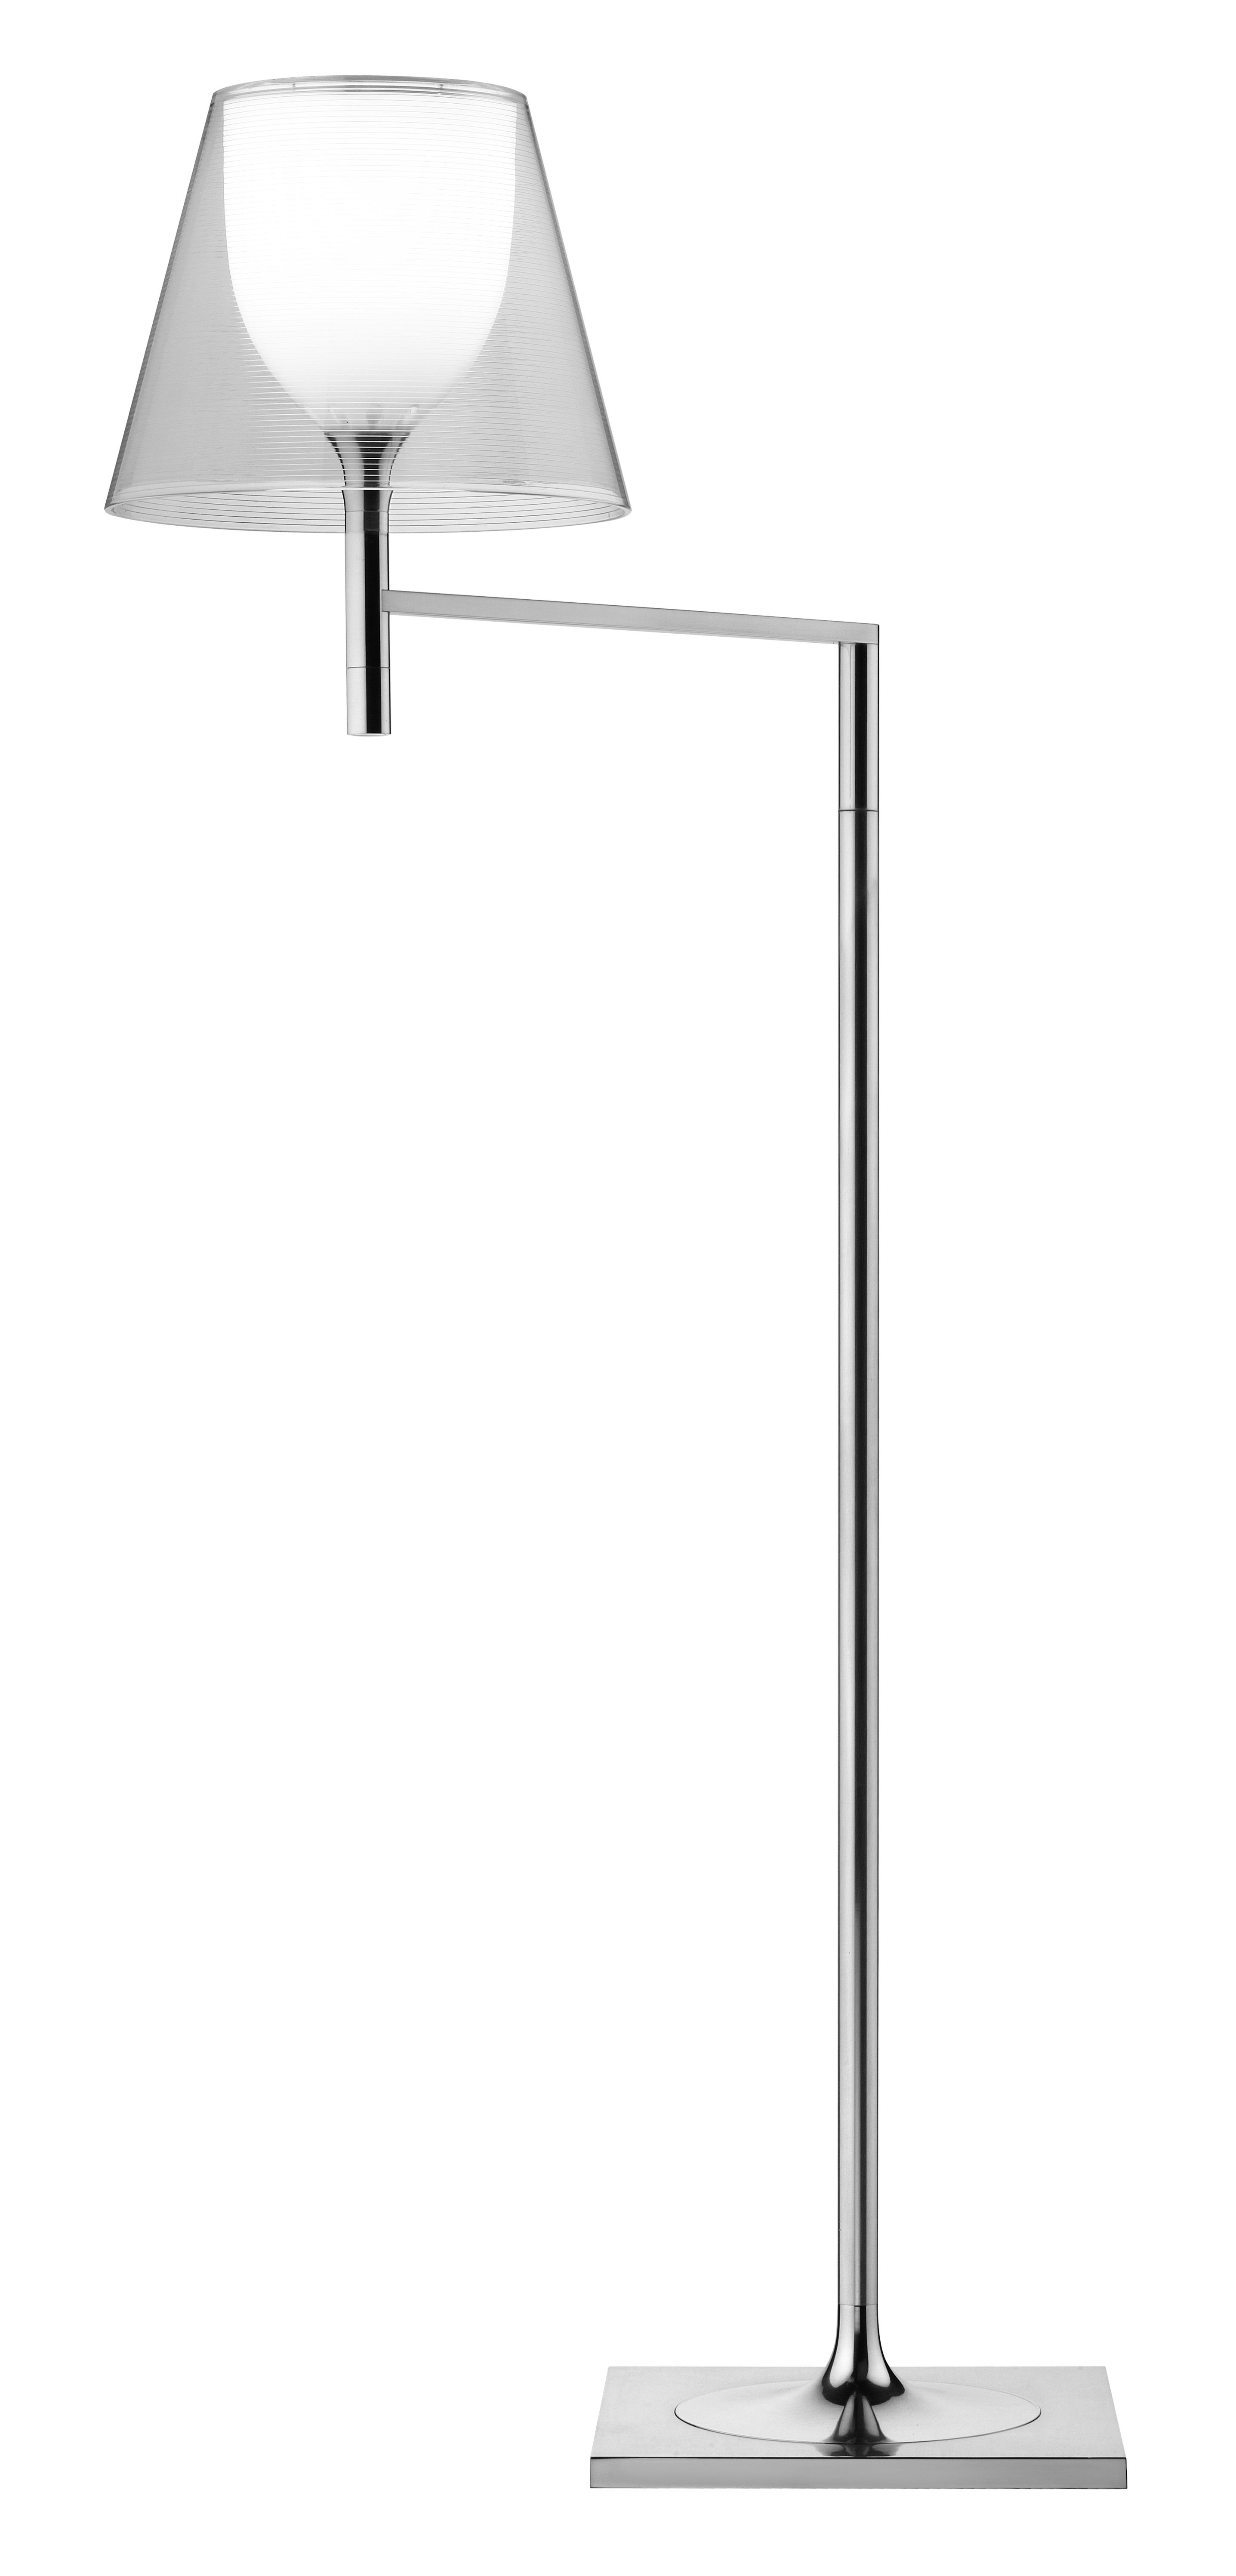 Lighting - Floor lamps - K Tribe F1 Floor lamp - H 112 cm by Flos - Transparent - PMMA, Polished aluminium